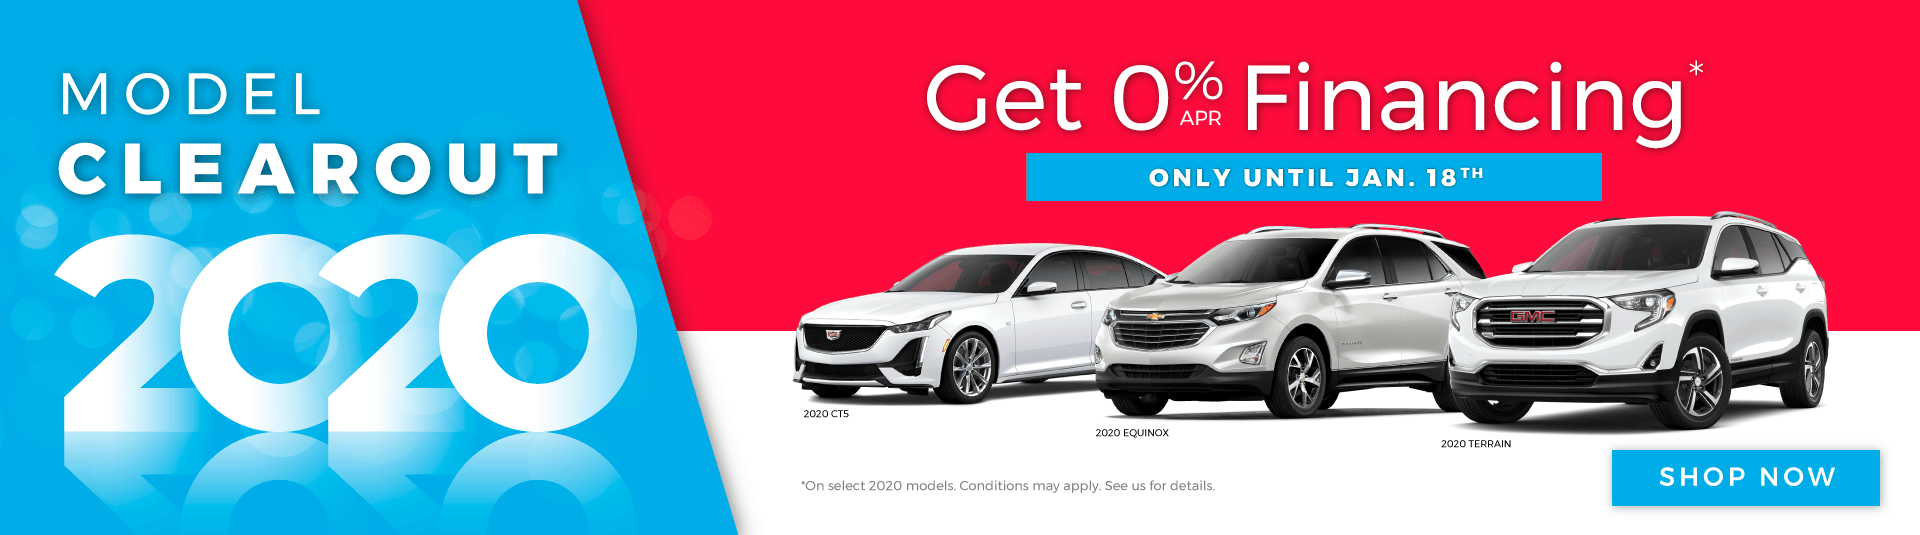 Chevrolet, Buick, GMC and Cadillac Model Clearout in Toronto - Last Chance To Get 0% Financing